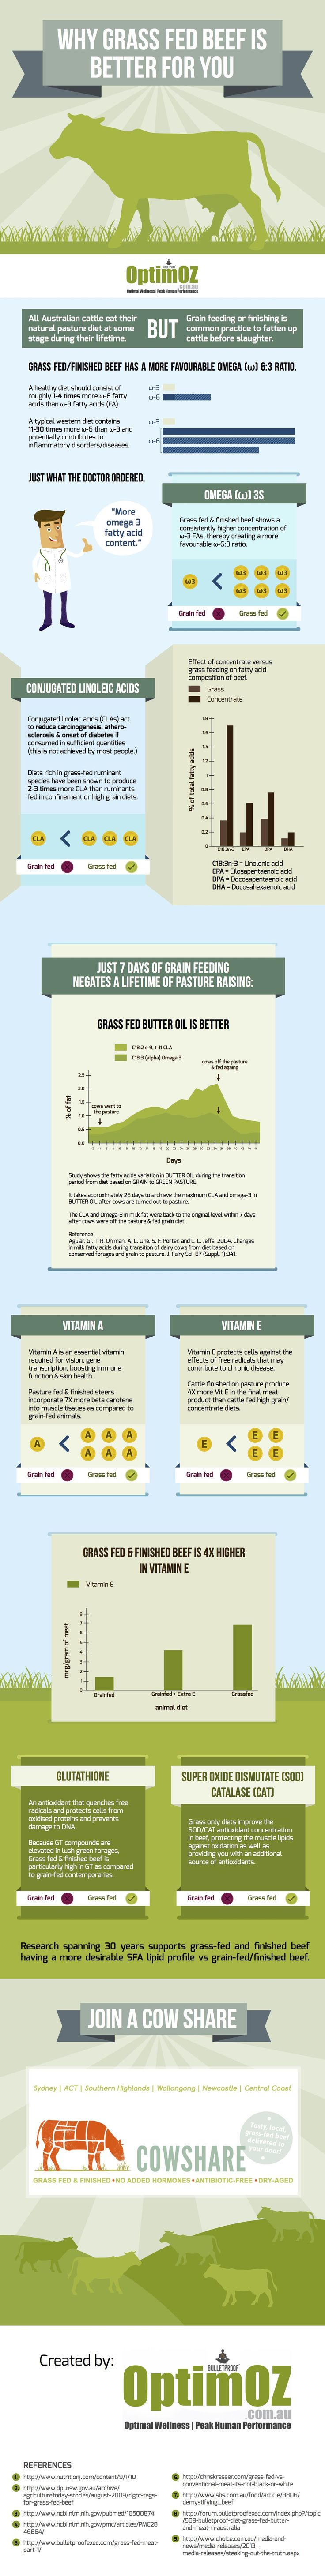 Why Grass Fed Beef is Better (Infographic)